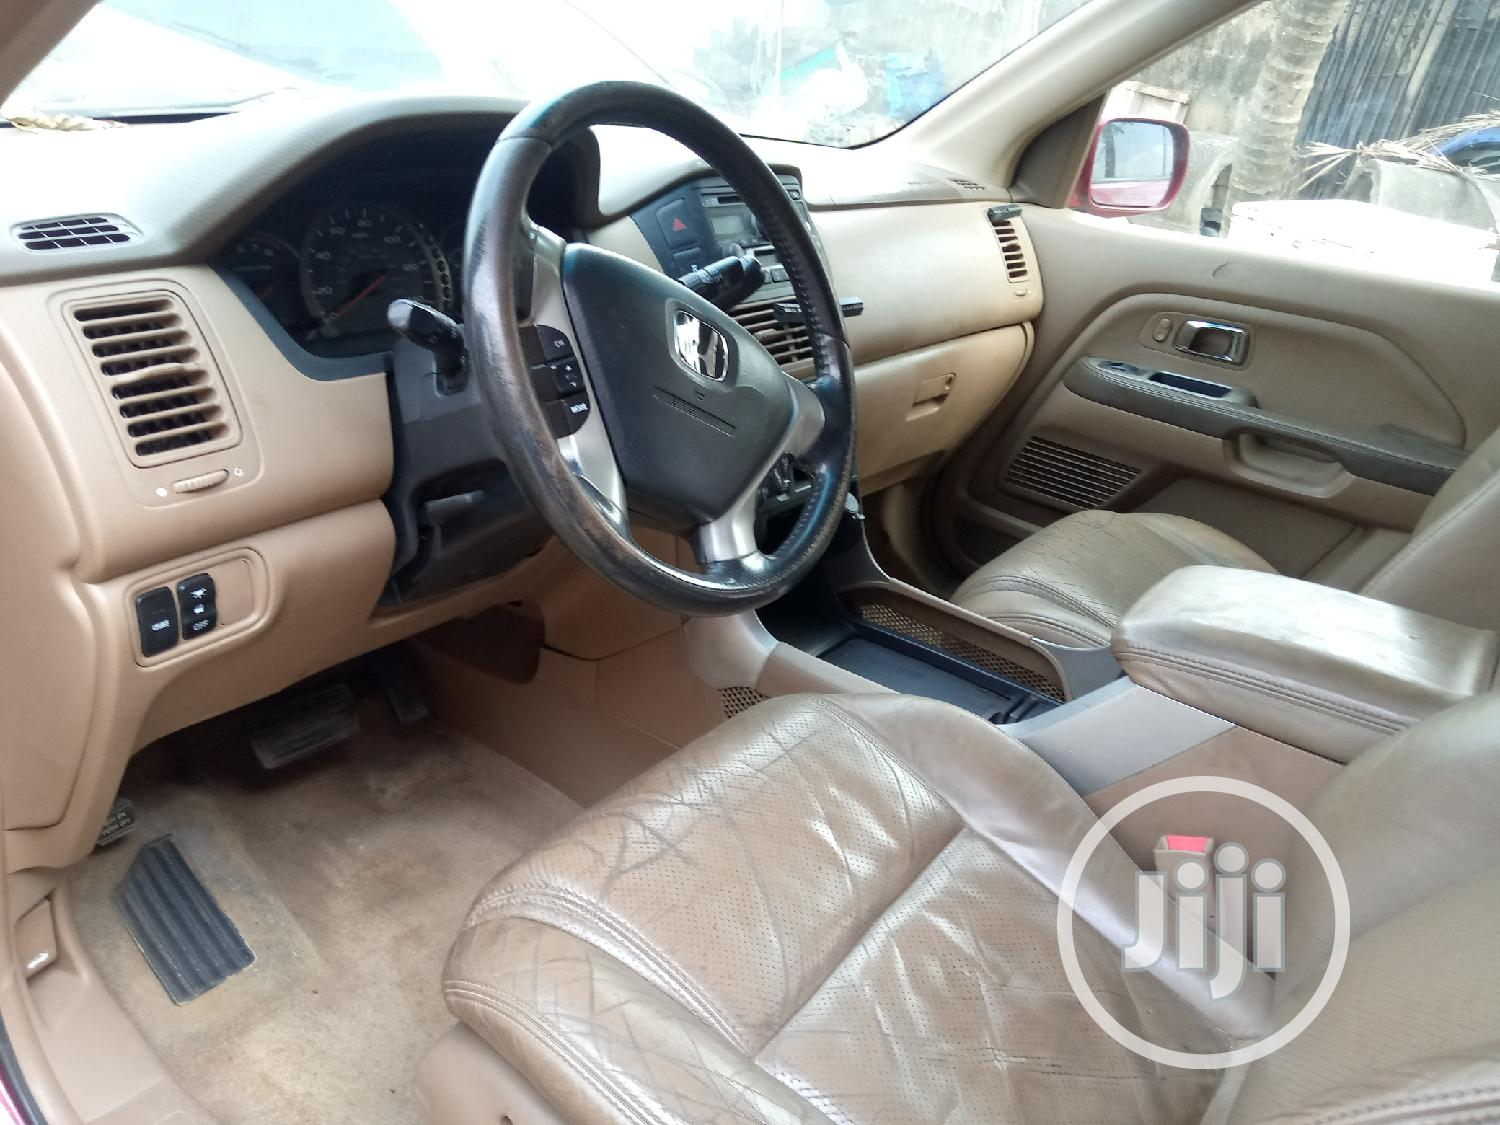 Honda Pilot 2004 EX 4x4 (3.5L 6cyl 5A) Red | Cars for sale in Ogba, Lagos State, Nigeria